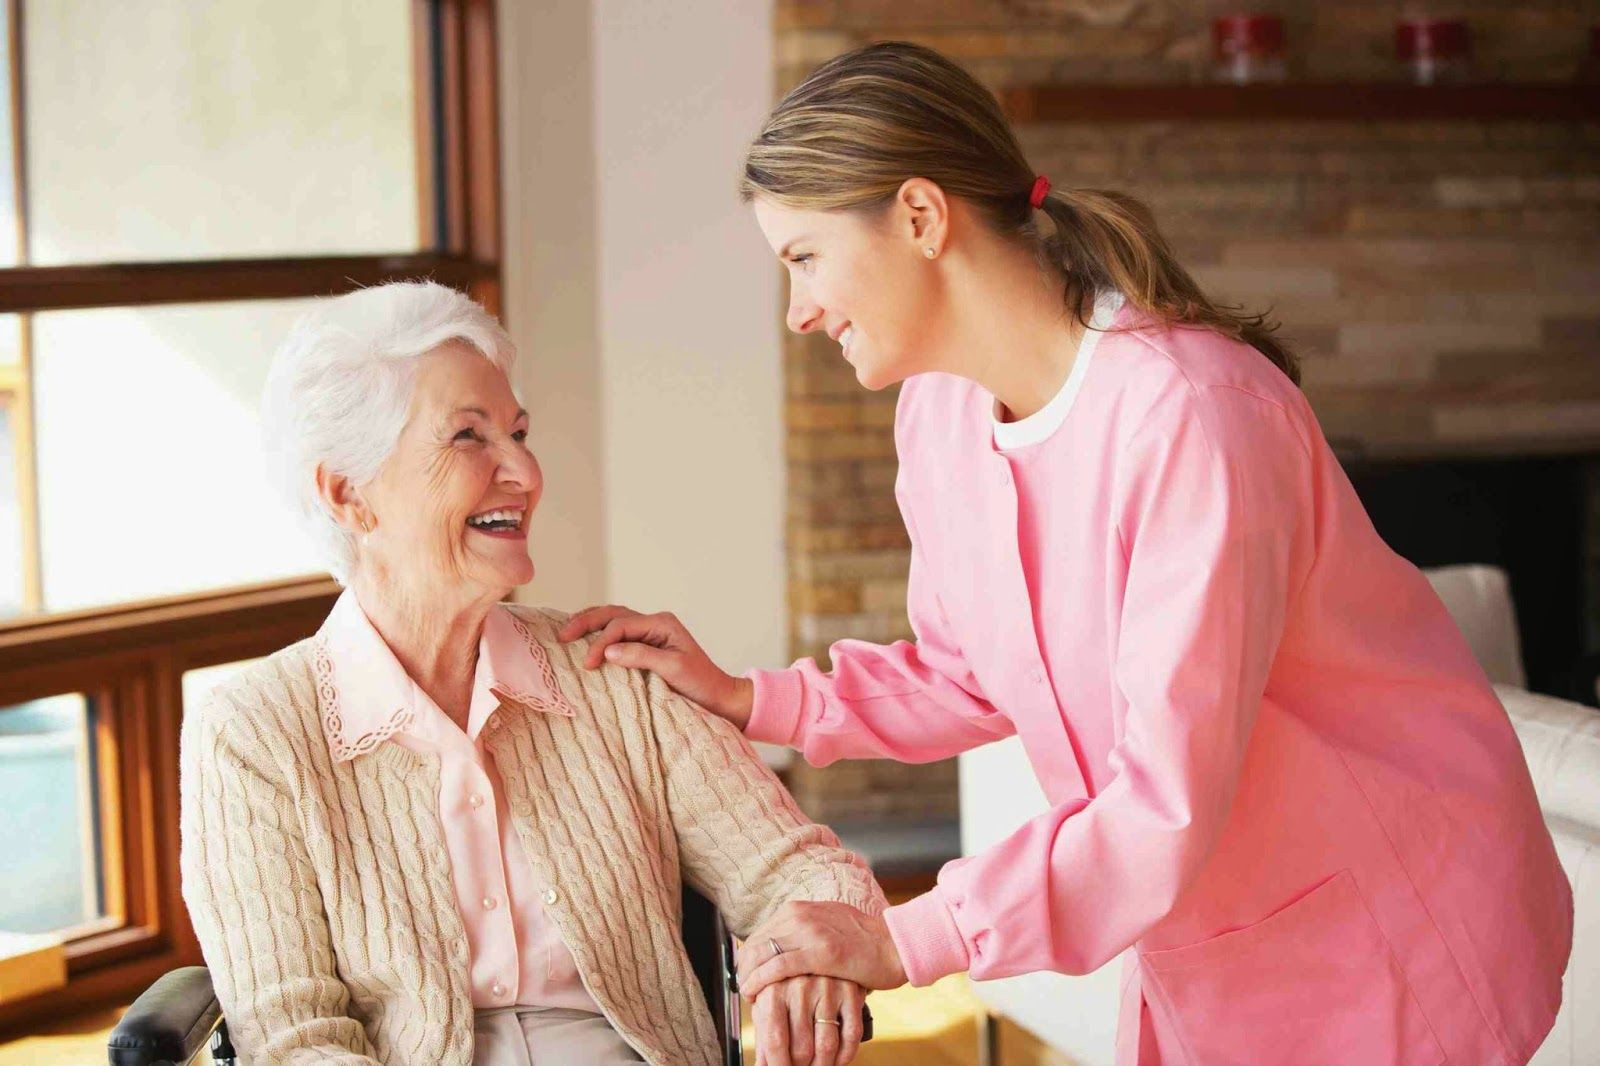 Caring is very important care agency home health care